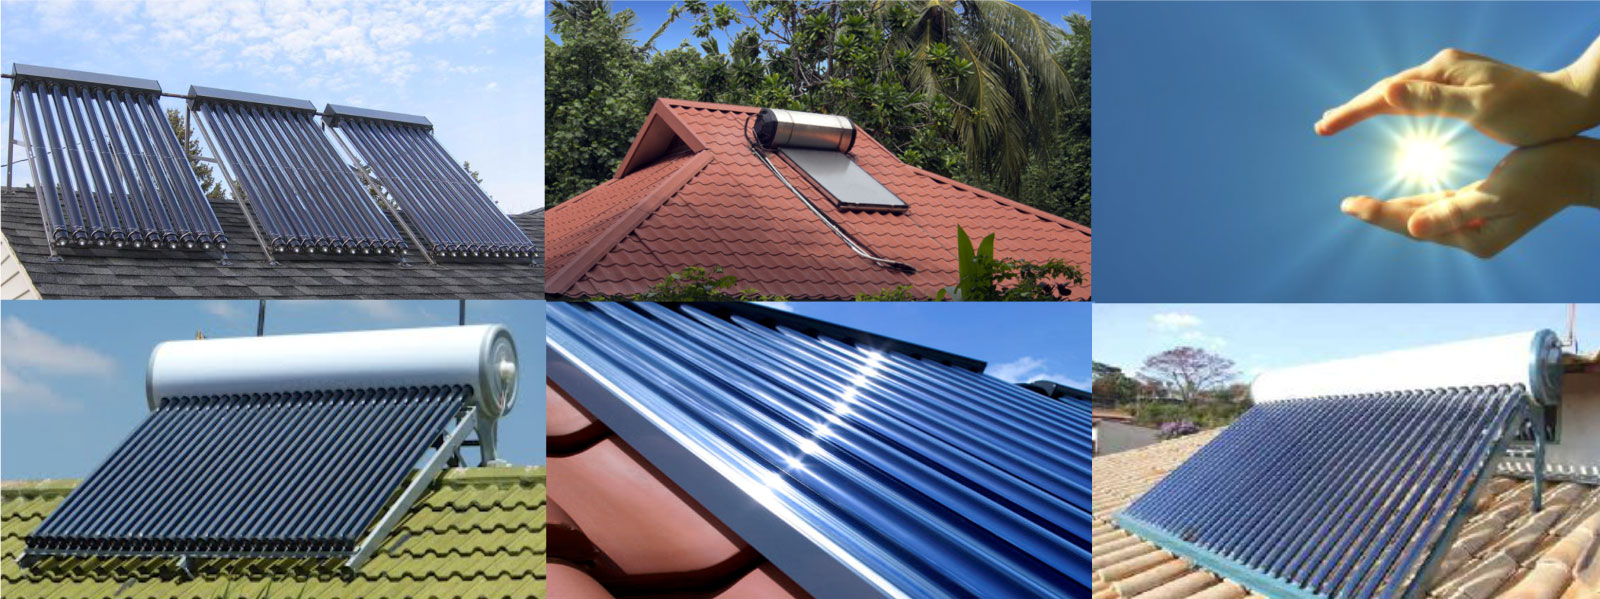 Classen Plumbers solar-heating-header Solar Heating Services Services